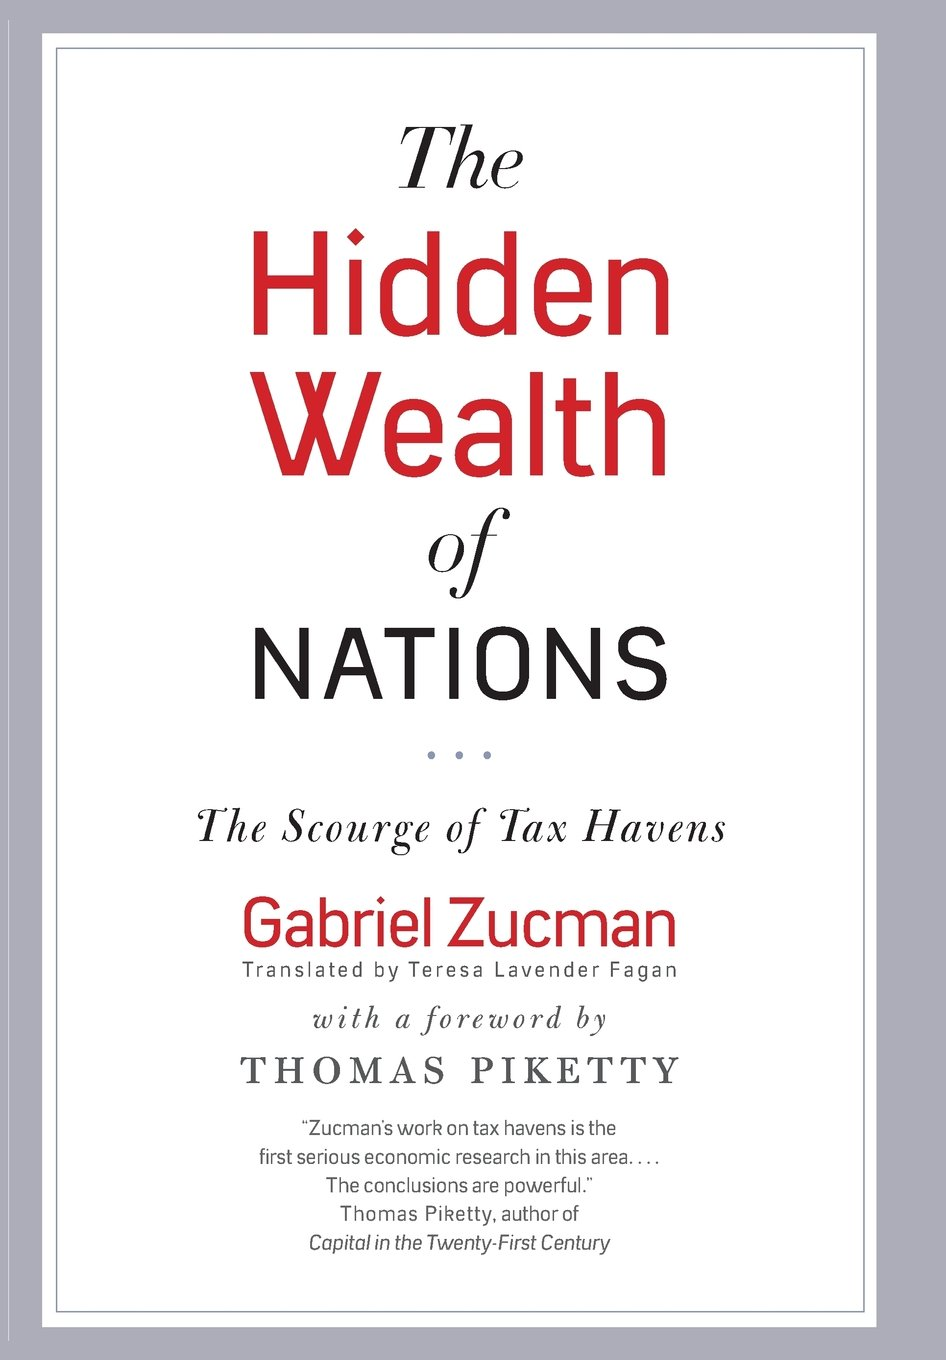 The Hidden Wealth of Nations: The Scourge of Tax Havens (Inglés) Tapa dura – 29 sep 2015